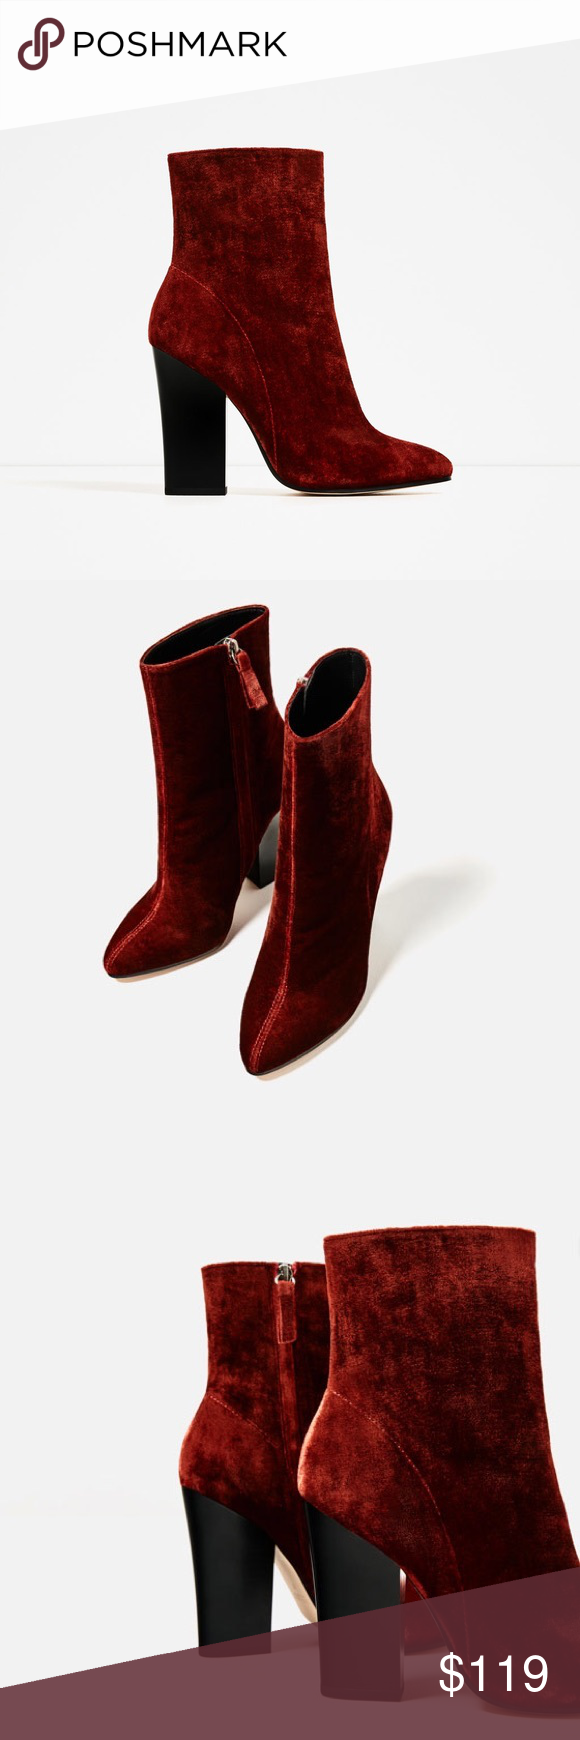 ZARA High Heel Velvet Ankle Boots Terracotta color high heel ankle boots. Central seam detail. Side zip closure. Pointed toe. Block heel. Heel height: 4.2 inches. Zara Shoes Ankle Boots & Booties